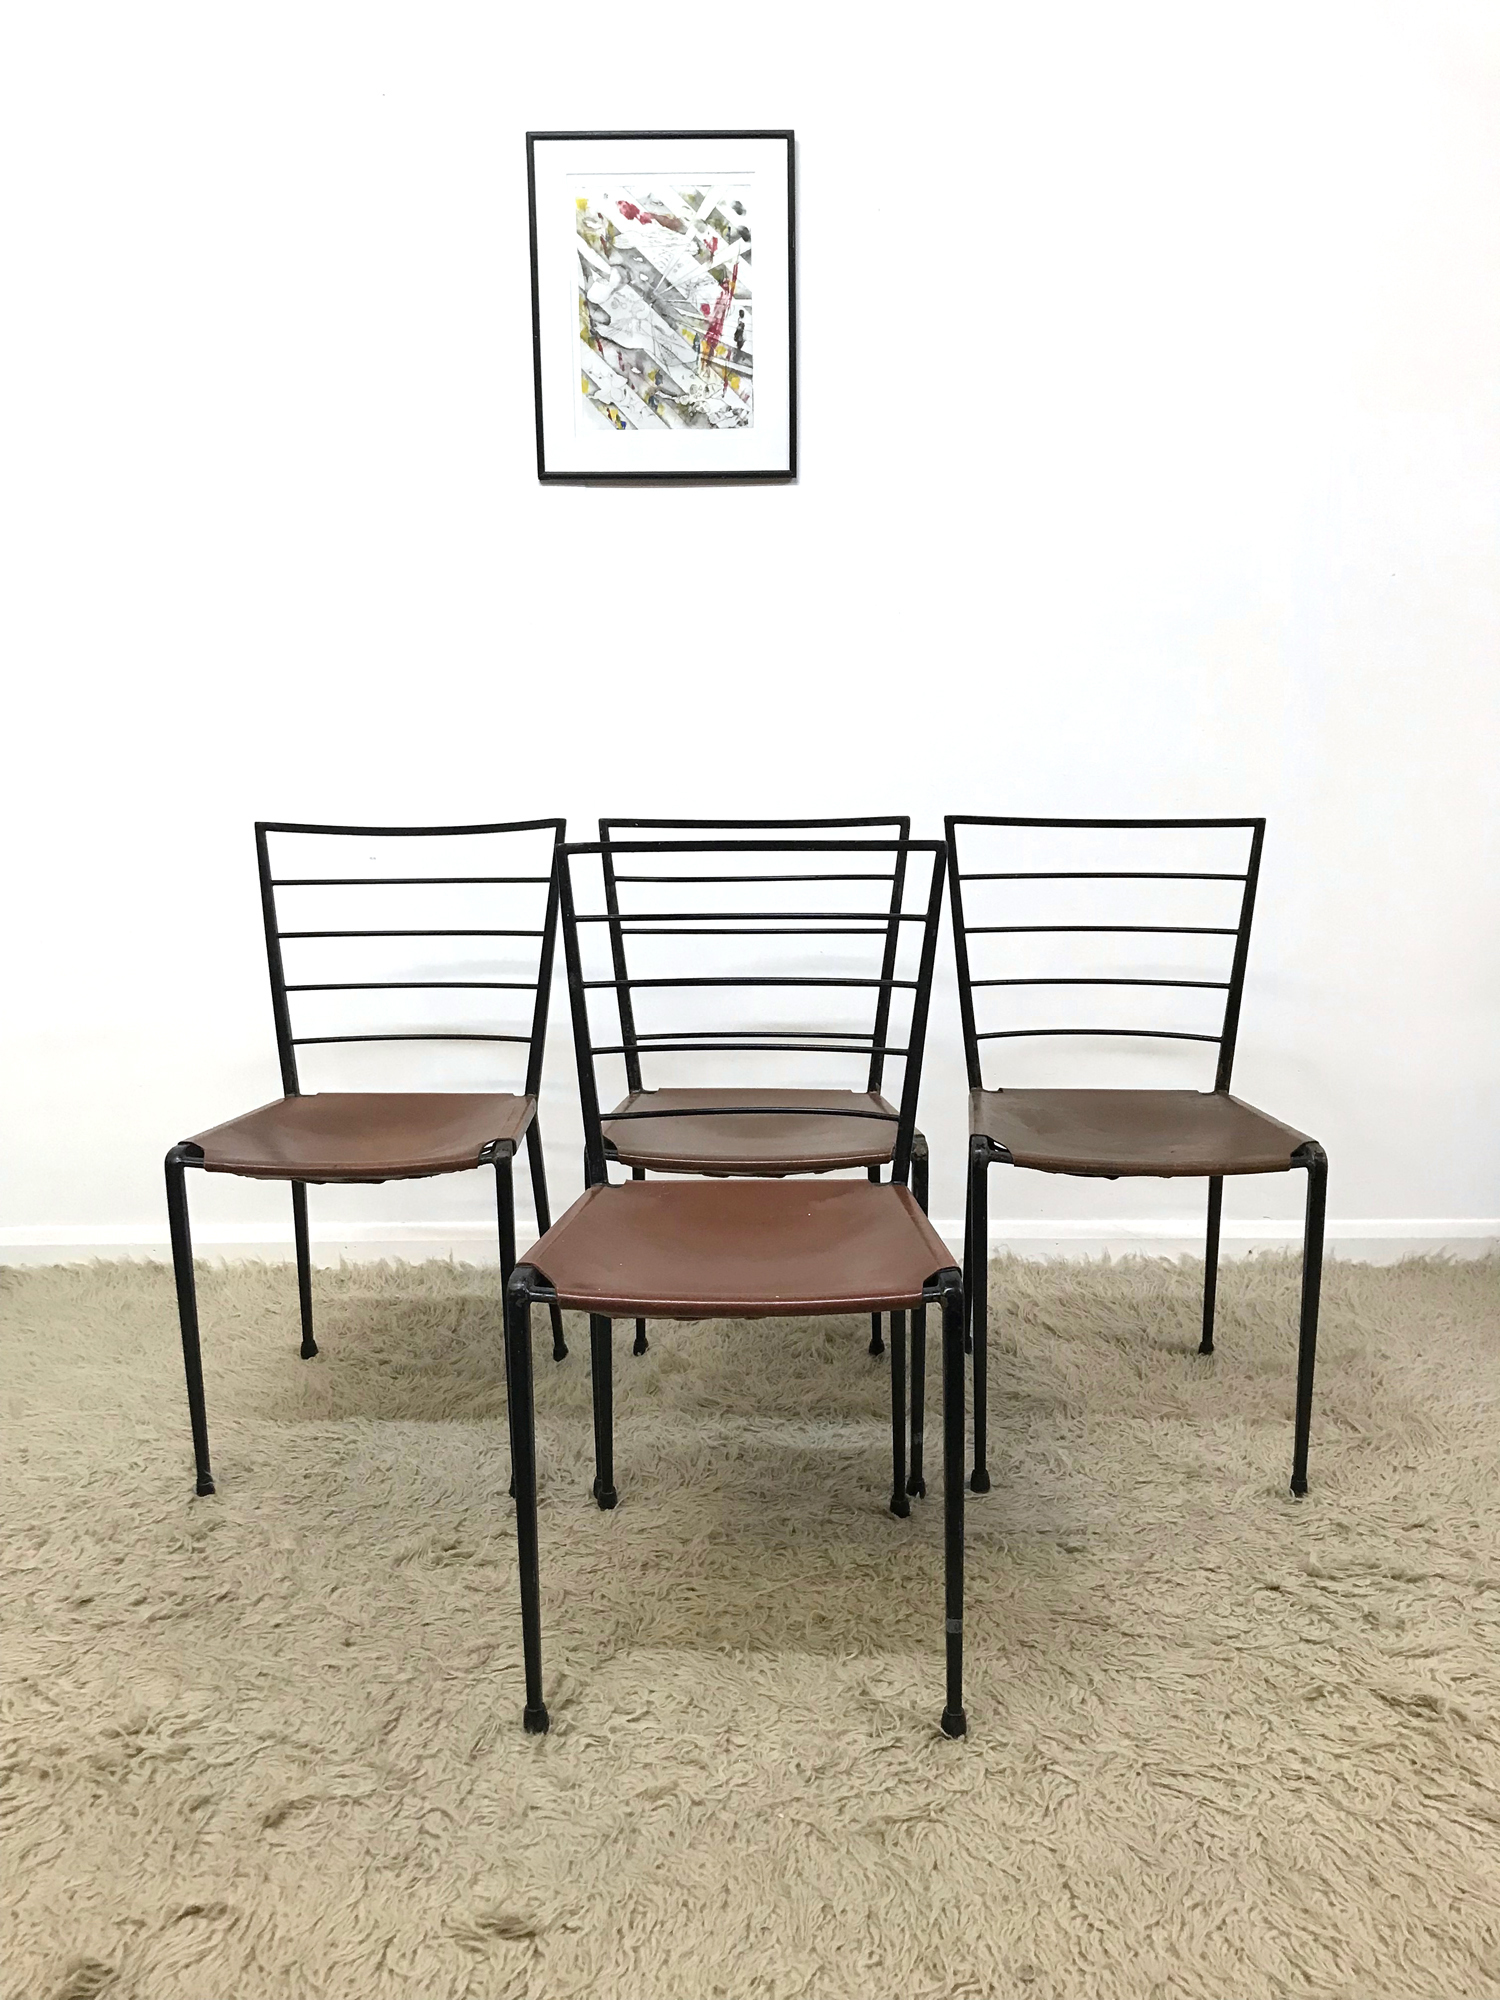 Swell Set Of 4 Rare 60S Staples Ladderax Metal And Leather Dining Dining Chairs Heals Andrewgaddart Wooden Chair Designs For Living Room Andrewgaddartcom